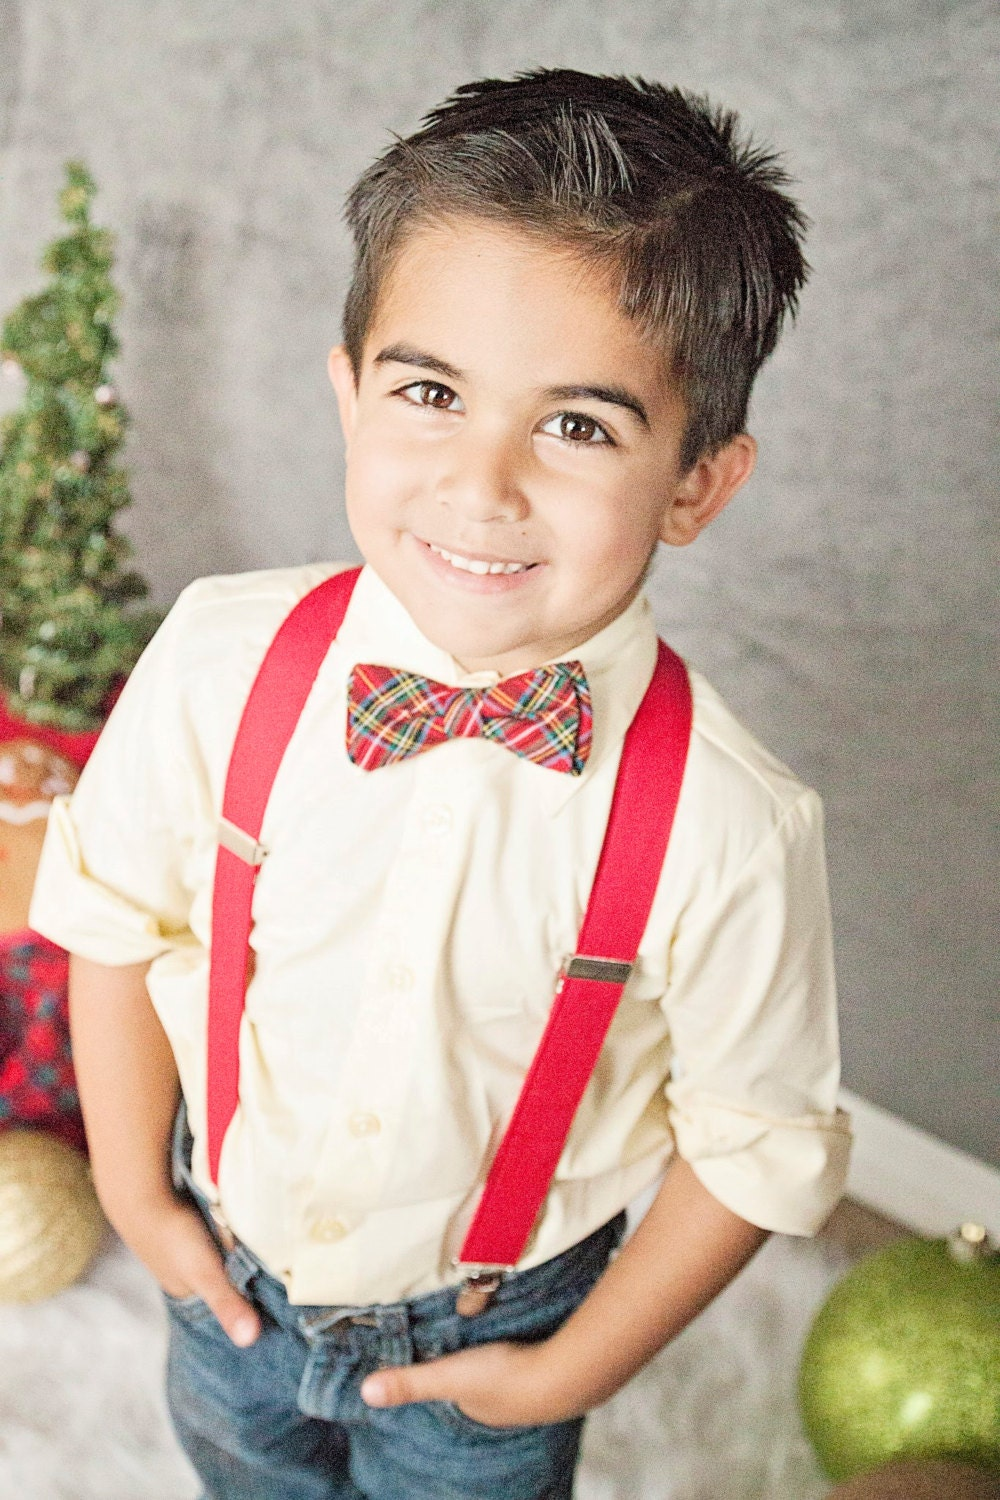 Little Boys Holiday Outfits & Suits () Boys Holiday/Christmas Outfits & Suits () Whether you're looking for traditionally hand-smocked fashions or adorable brother-sister outfits, we feature many exclusive styles that will have your Boy looking picture perfect.